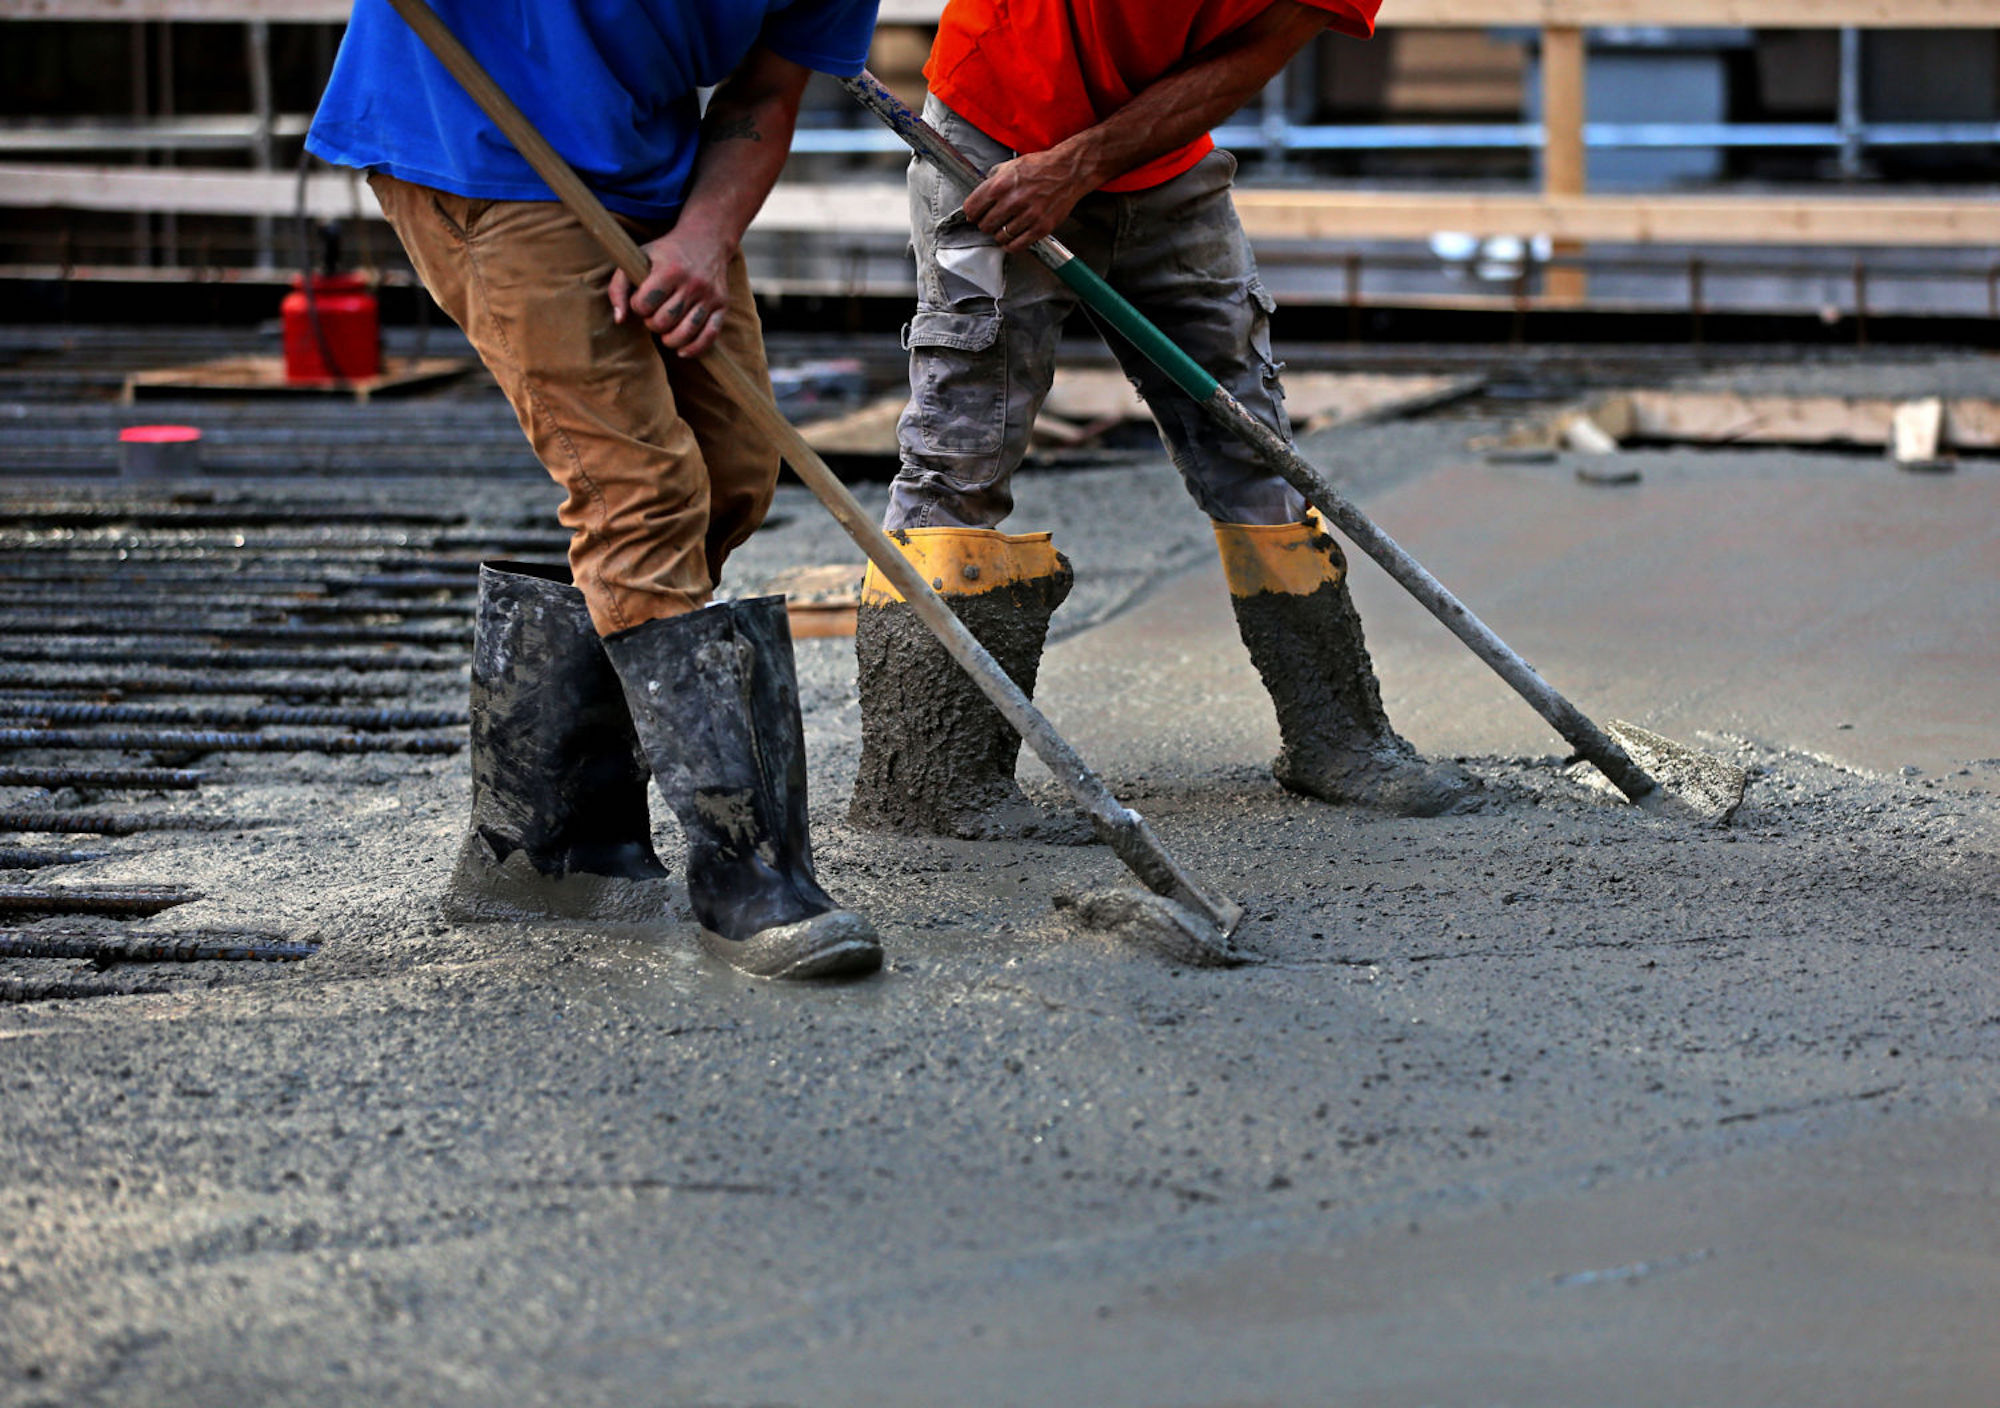 Two men, one wearing a red shirt with grey pants, and the other one a blue shirt and brown plants, use shovels to distribute fresh concrete over a street. They're also wearing construction boots.